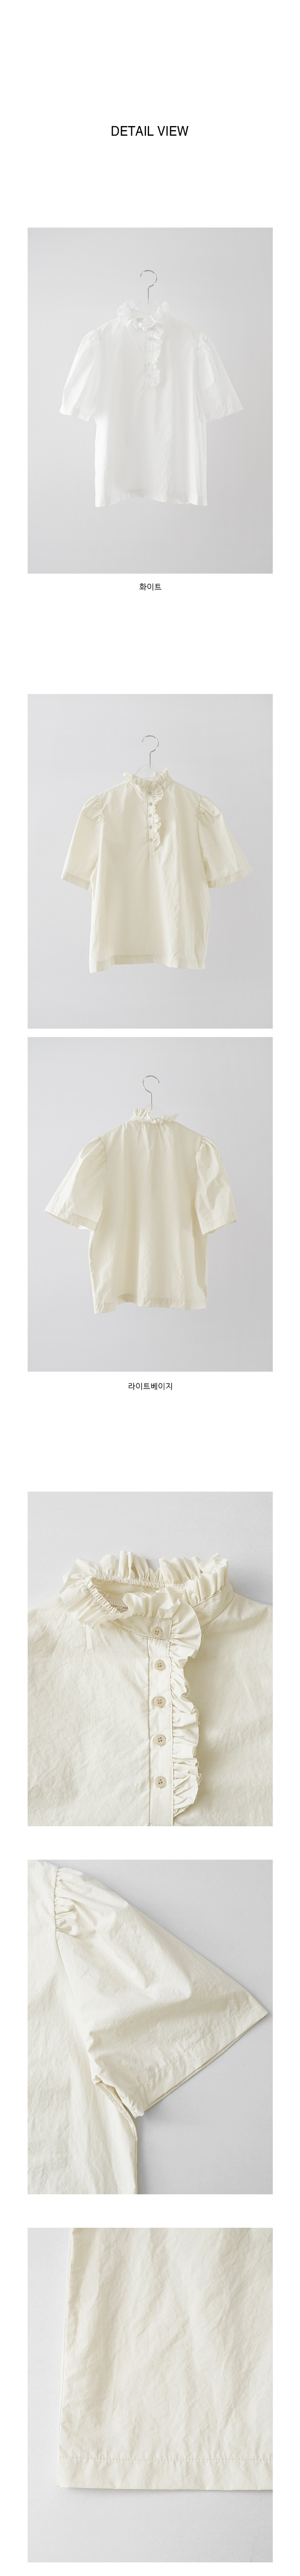 cut-off frill blouse